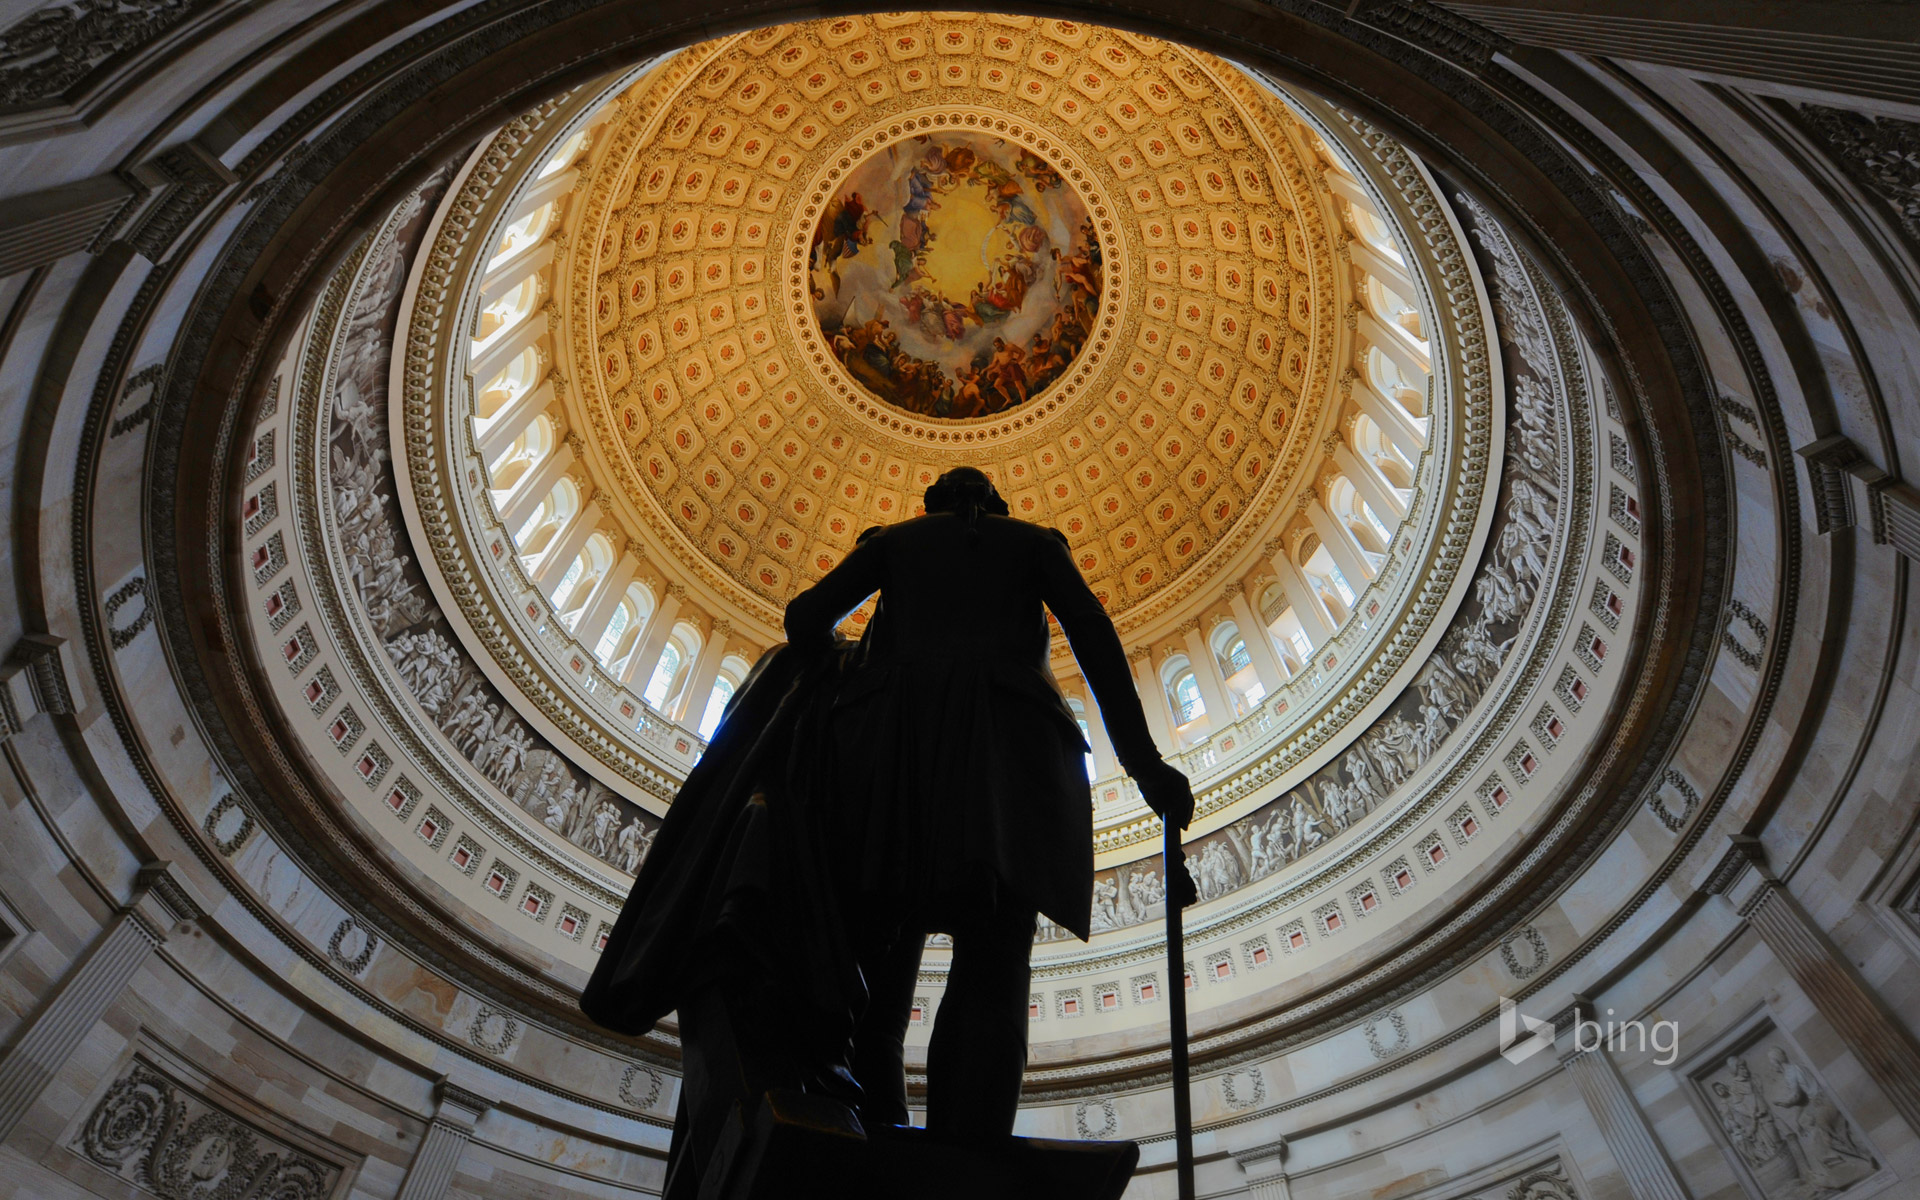 Bronze statue of George Washington in the Capitol rotunda in Washington, DC